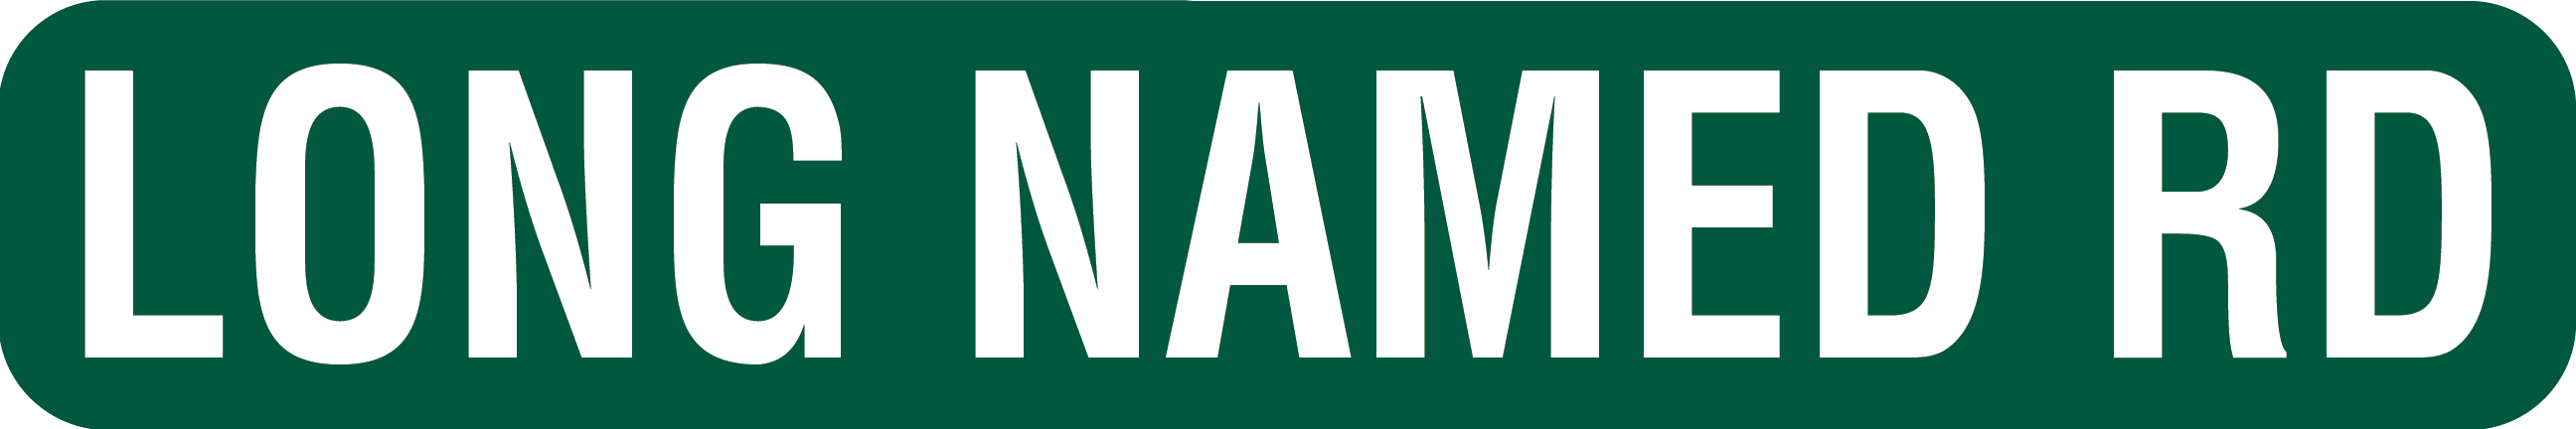 6x36 Street Sign for Long Road Names